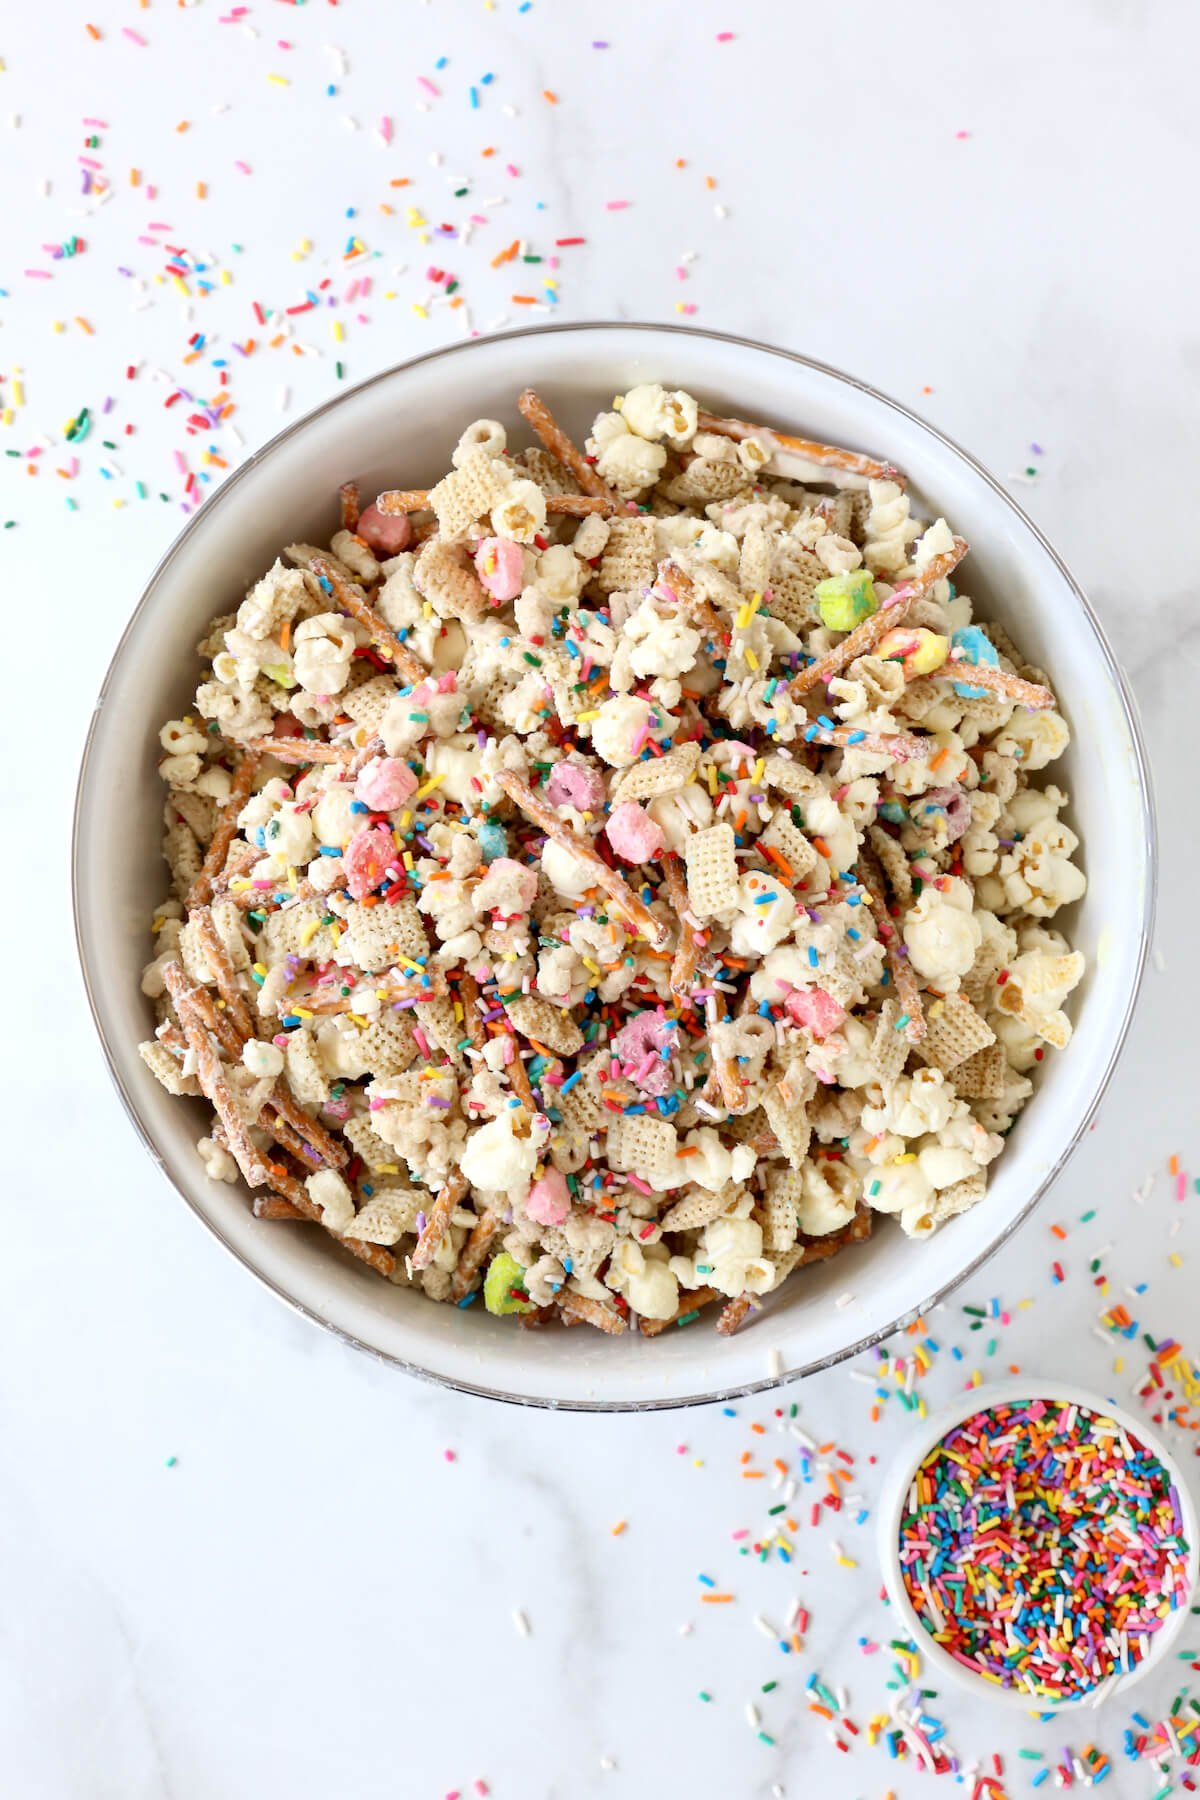 a large bowl of mixed together chex, pretzels, lucky charm cereal, popcorn and rainbow sprinkles